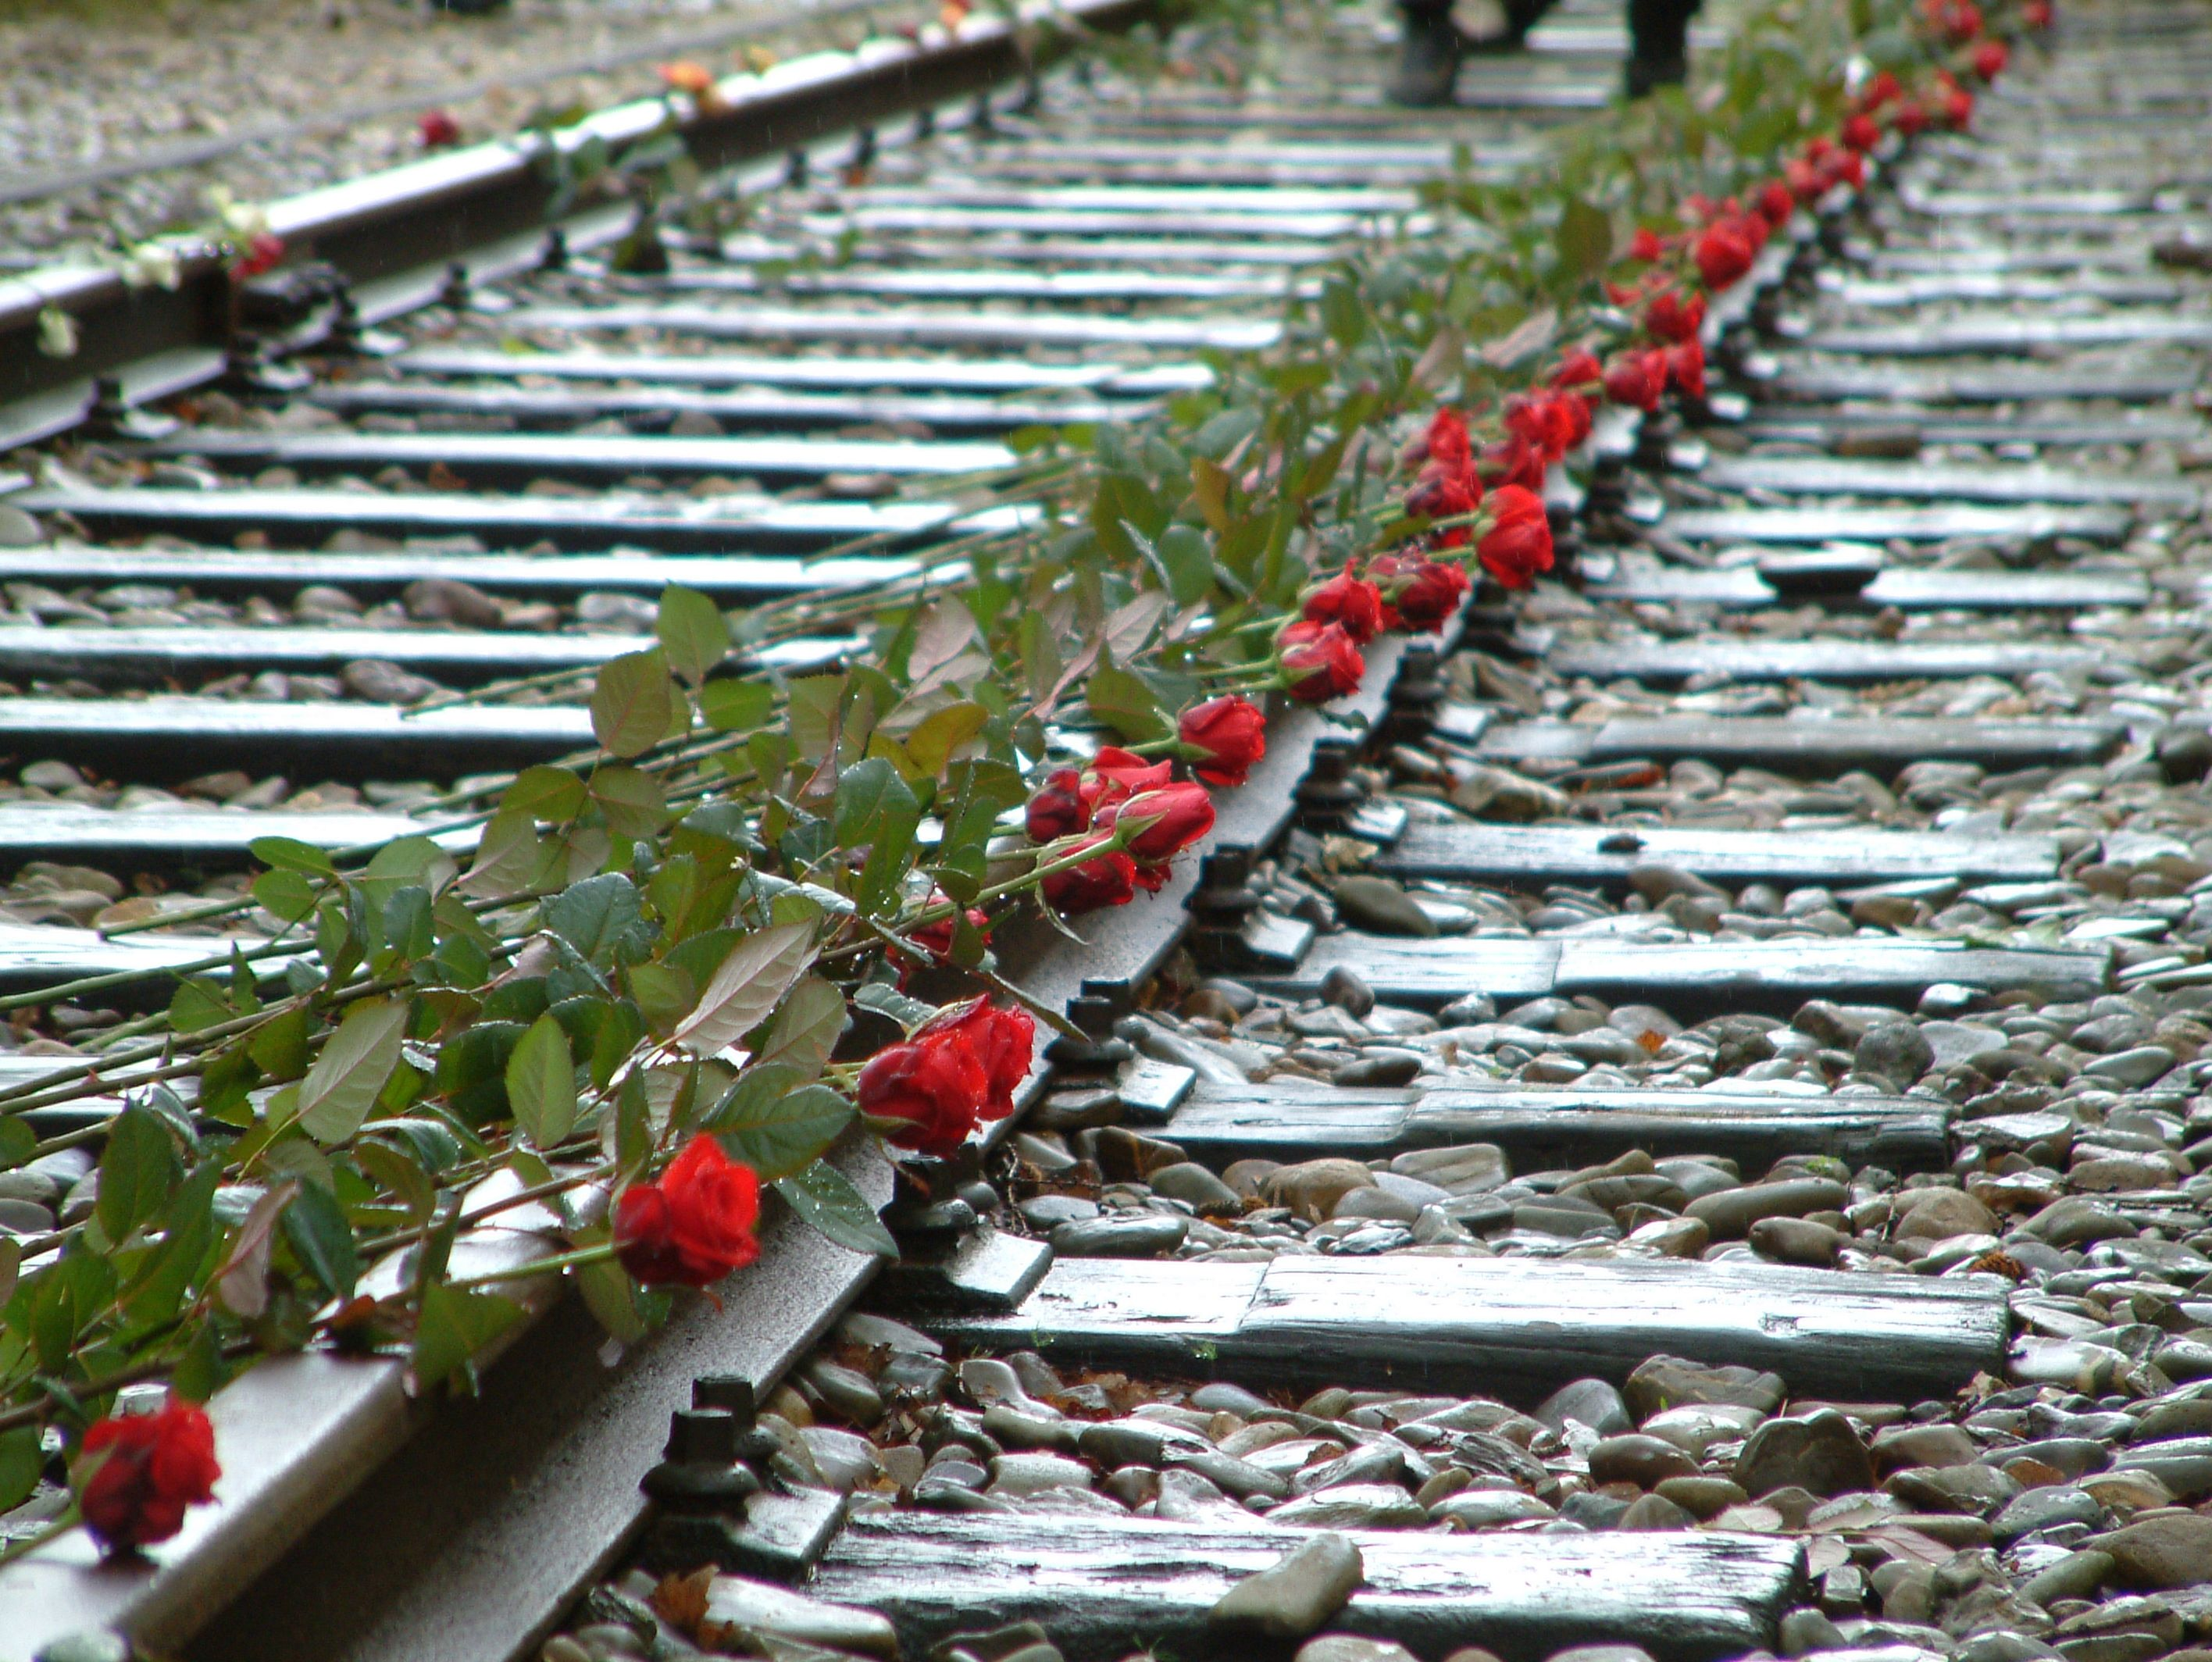 roses on the railway ties at Westerbork